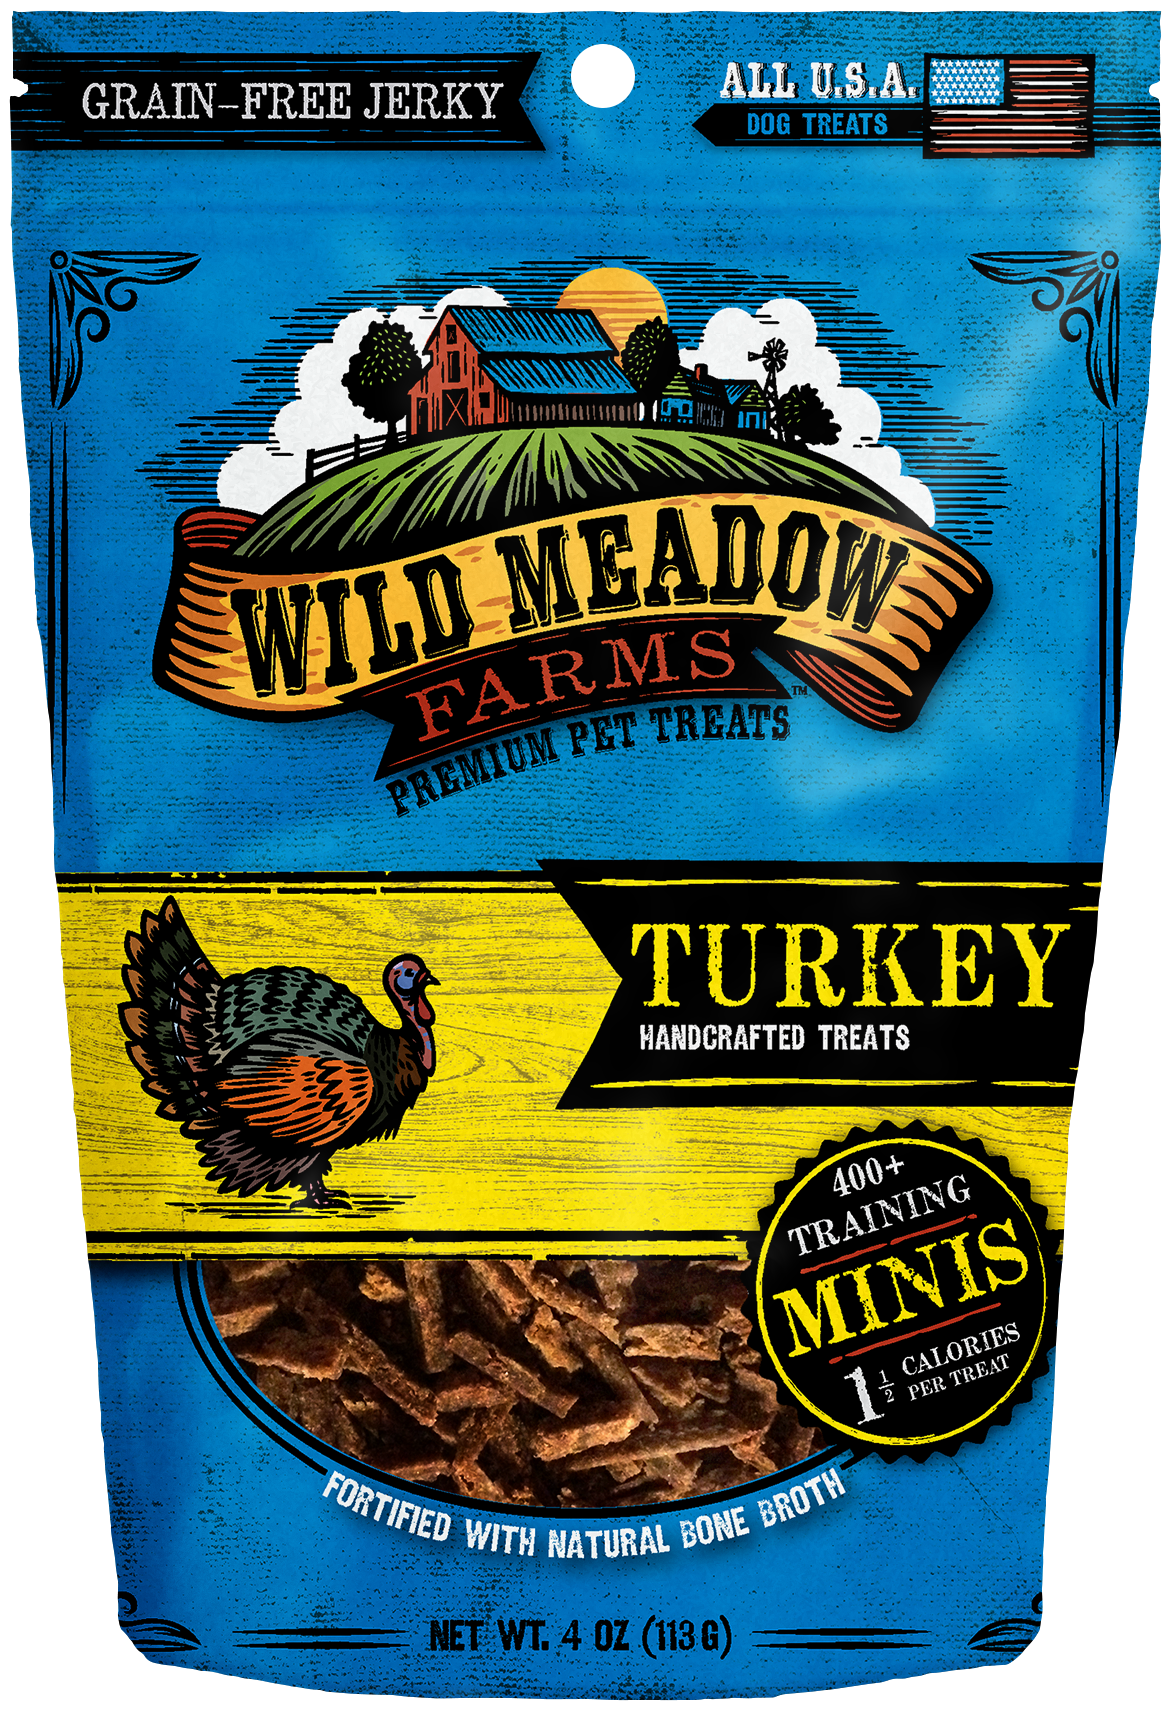 Turkey Minis   USA Made Training Size Dog Treats 4oz by Wild Meadow Farms. Turkey Minis Dog Treats   Wild Meadow Farms